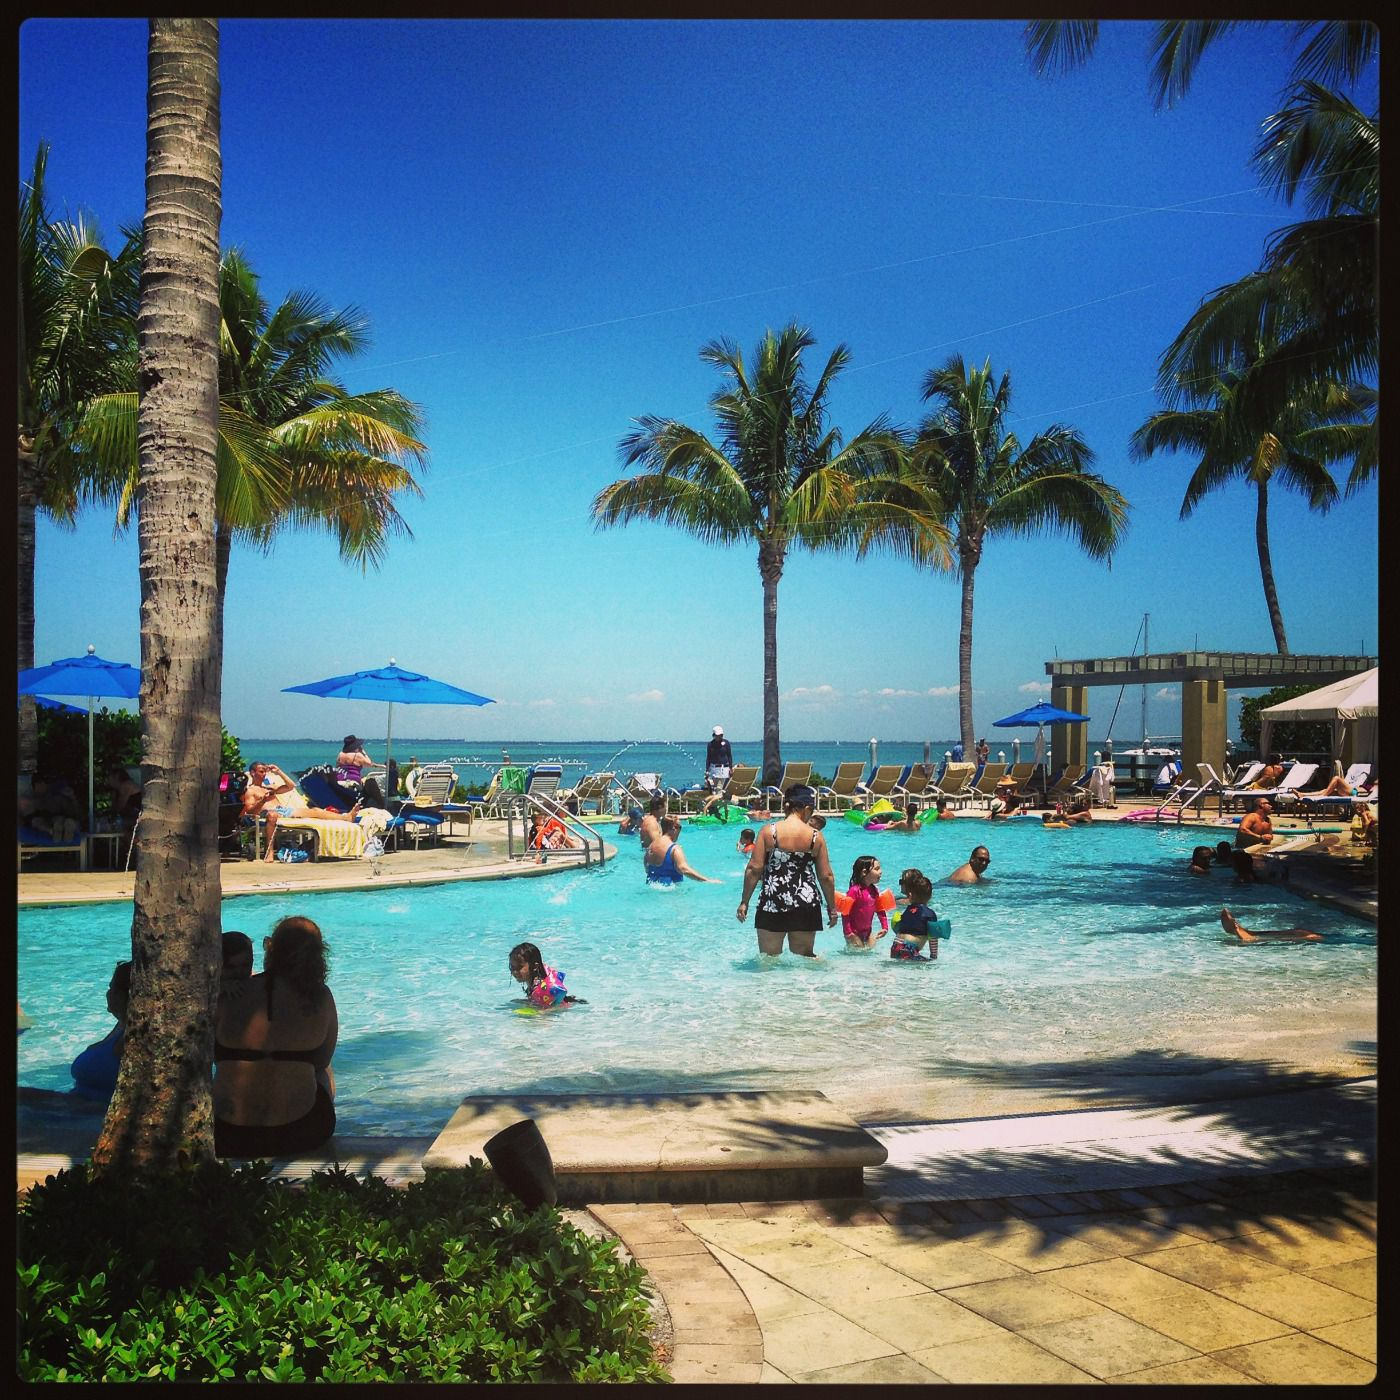 Captiva Island: Instagram: South Seas Island Resort, Captiva Island